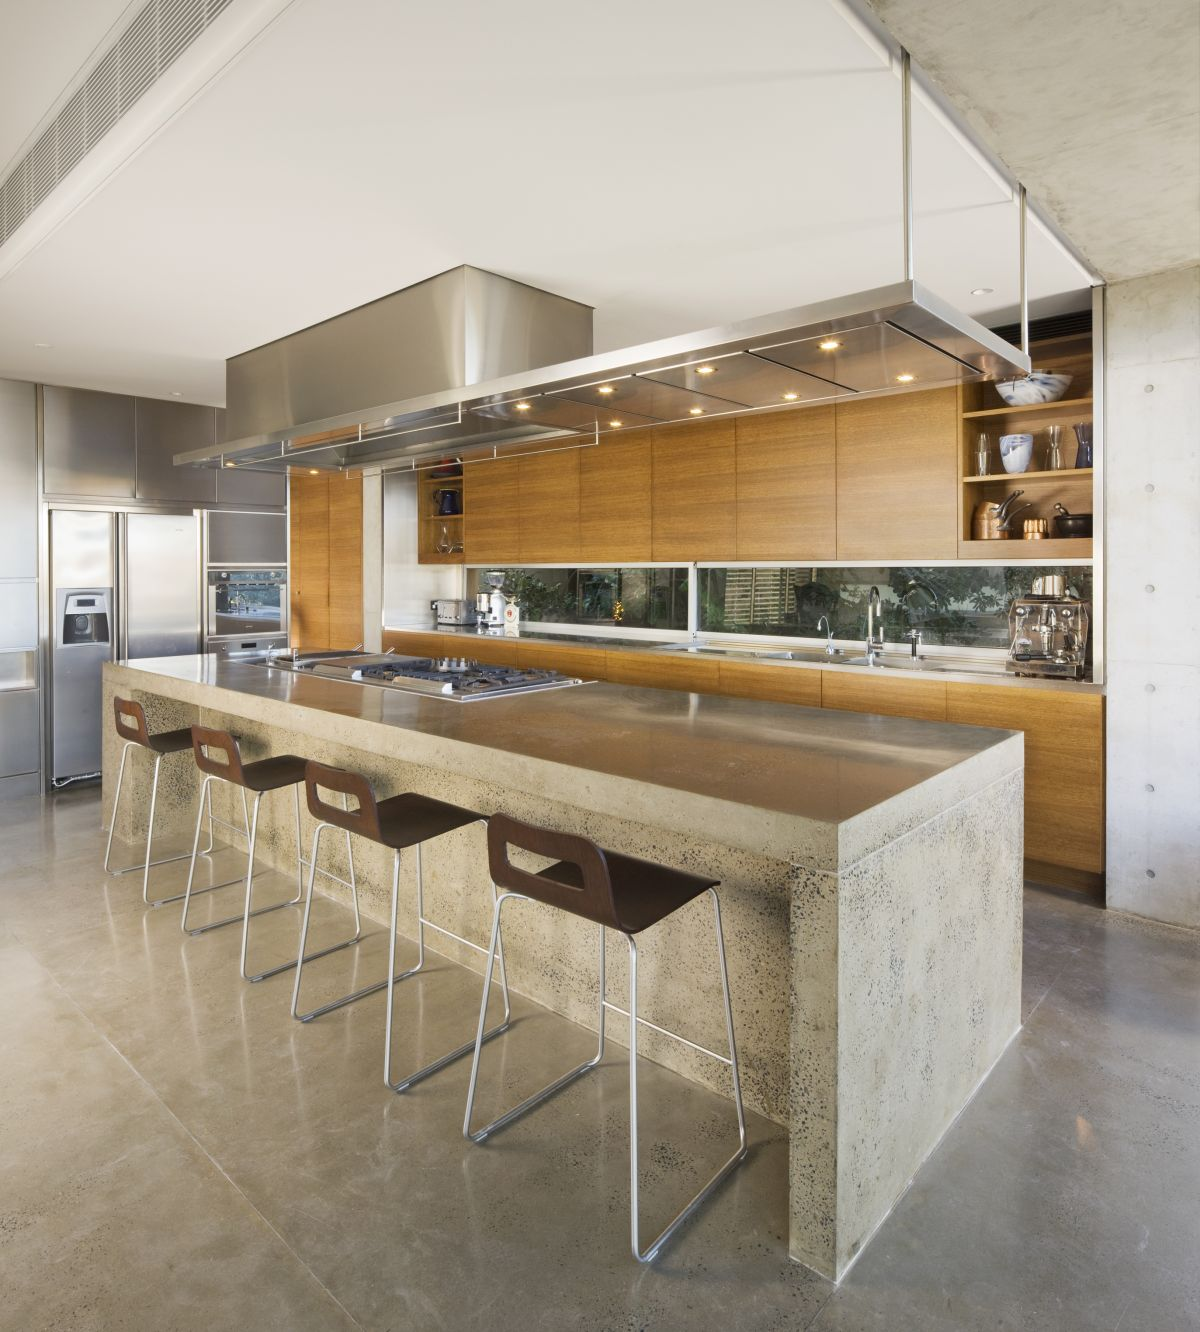 Pictures Of Modern Kitchens: Simply Inspiring 10 Wonderful Kitchen Design Lines That